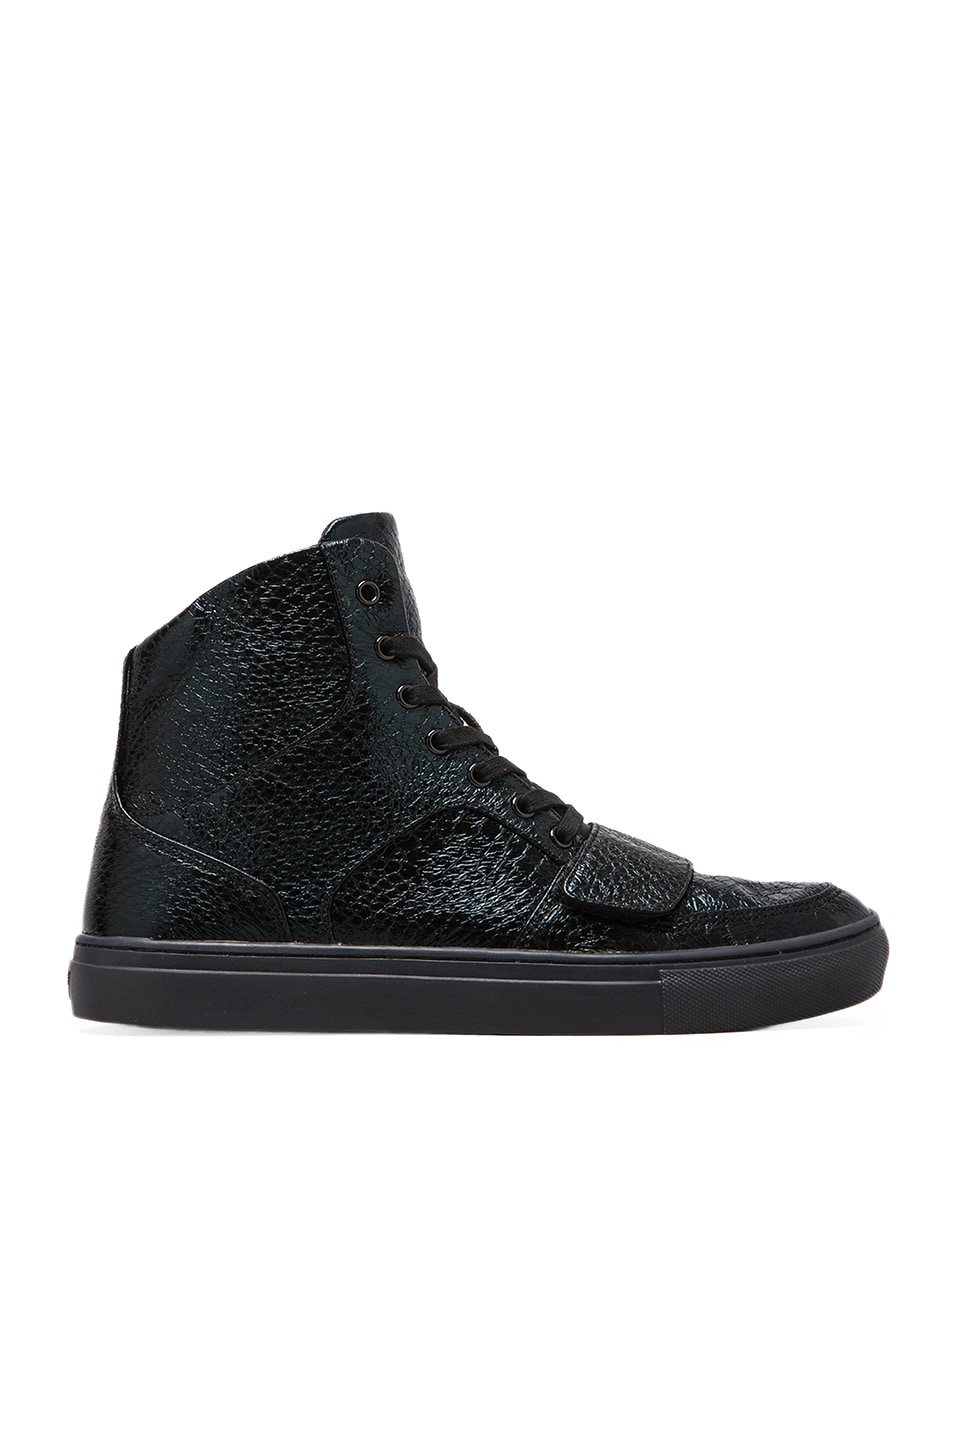 Creative Recreation Cesario X in Black Snake/Black Ice